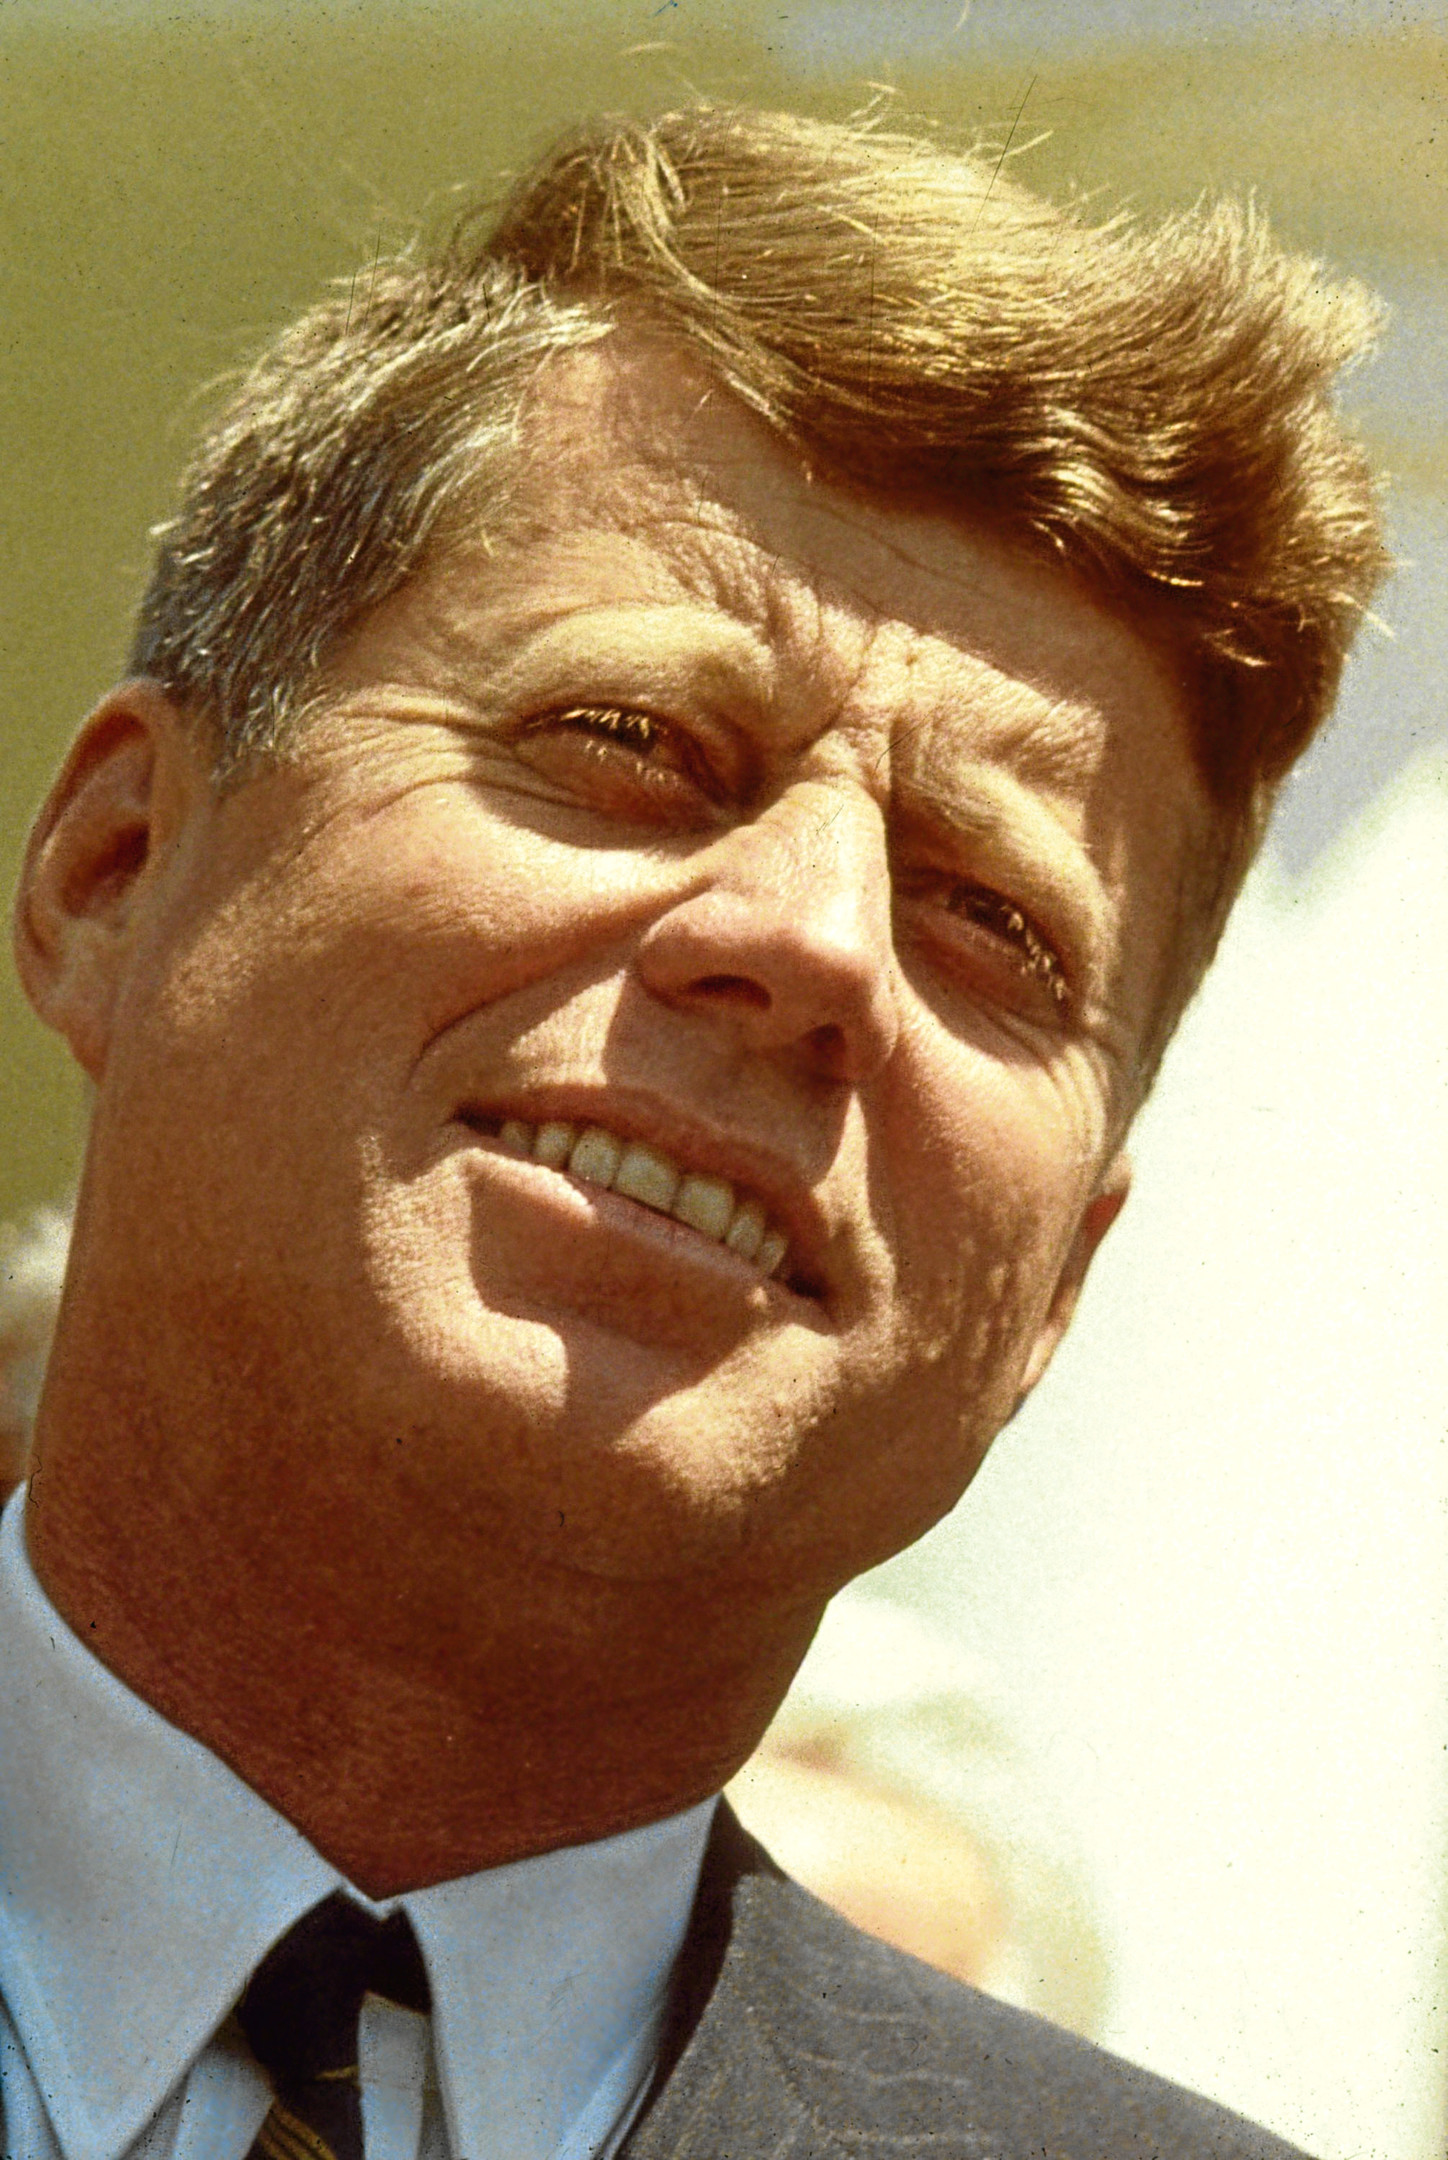 U.S. President John Fitzgerald Kennedy is shown in this 1960 photograph (Photo by Getty Images)